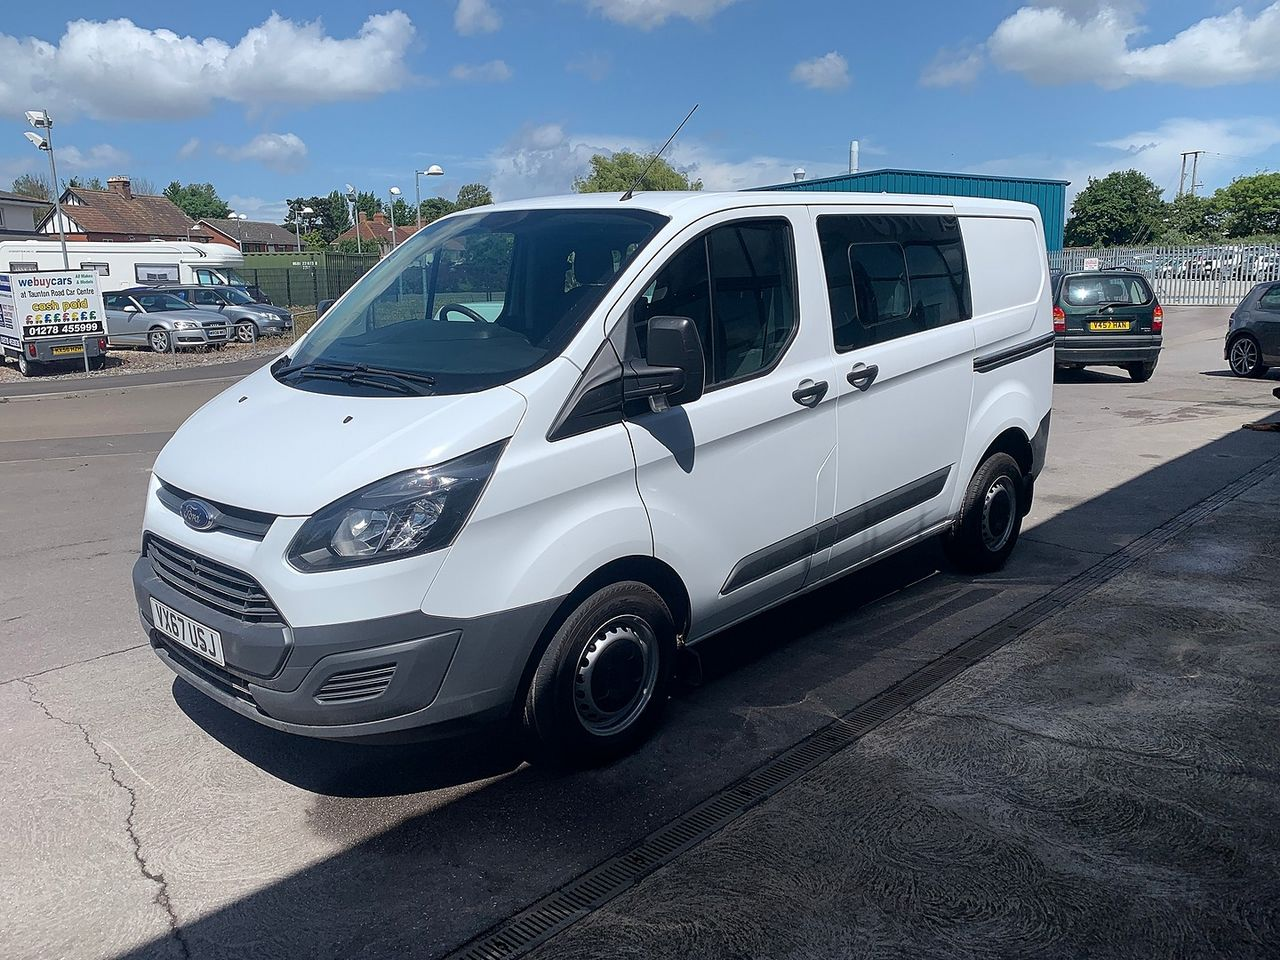 2017 FORD Transit Custom Crew Cab 2.0TD 105PS 270 FWD L1 - Picture 2 of 11